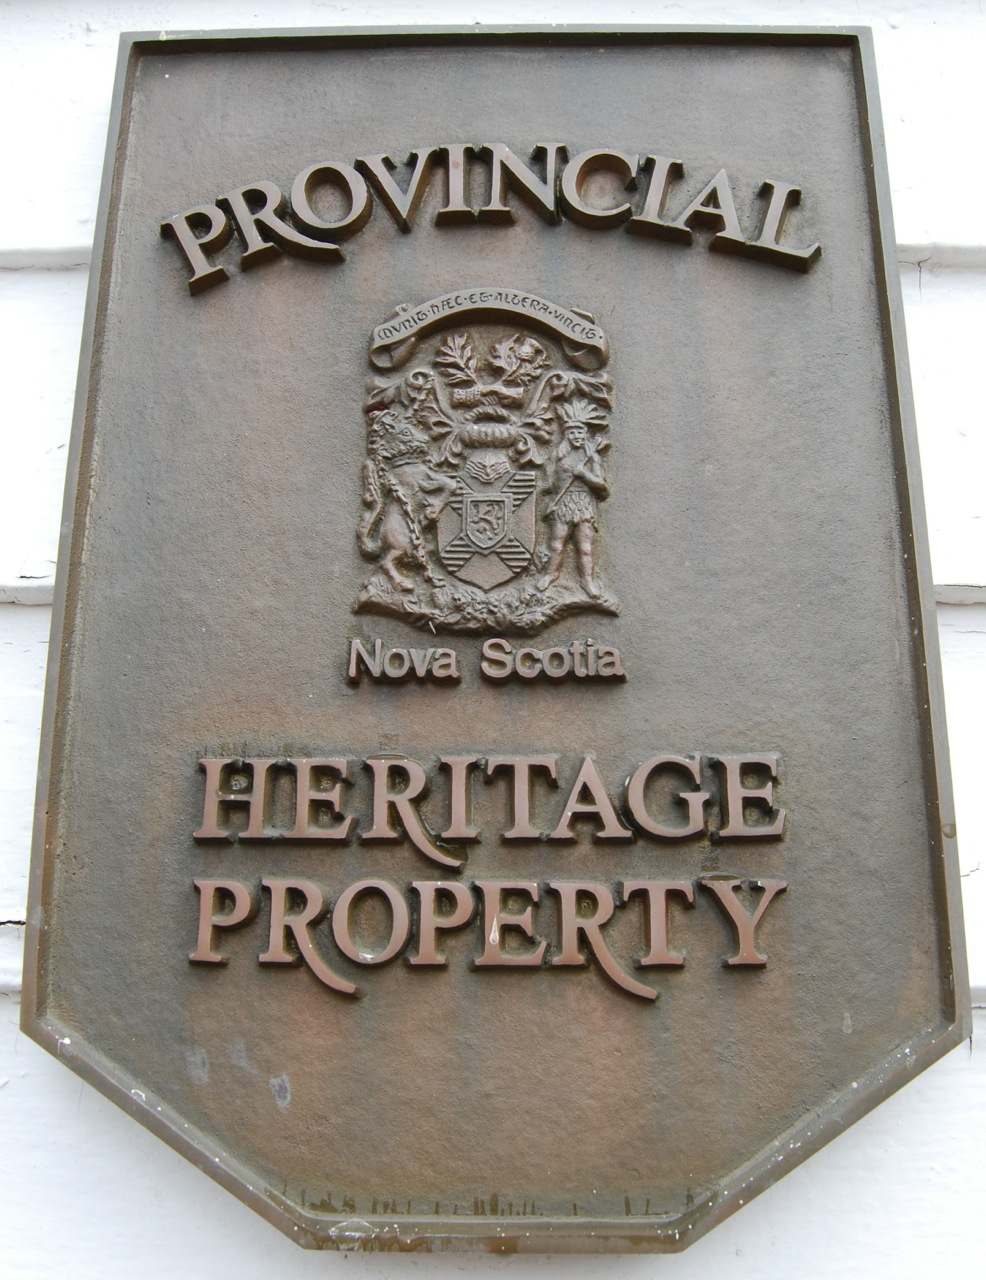 Official NS Heritage Property plaque.